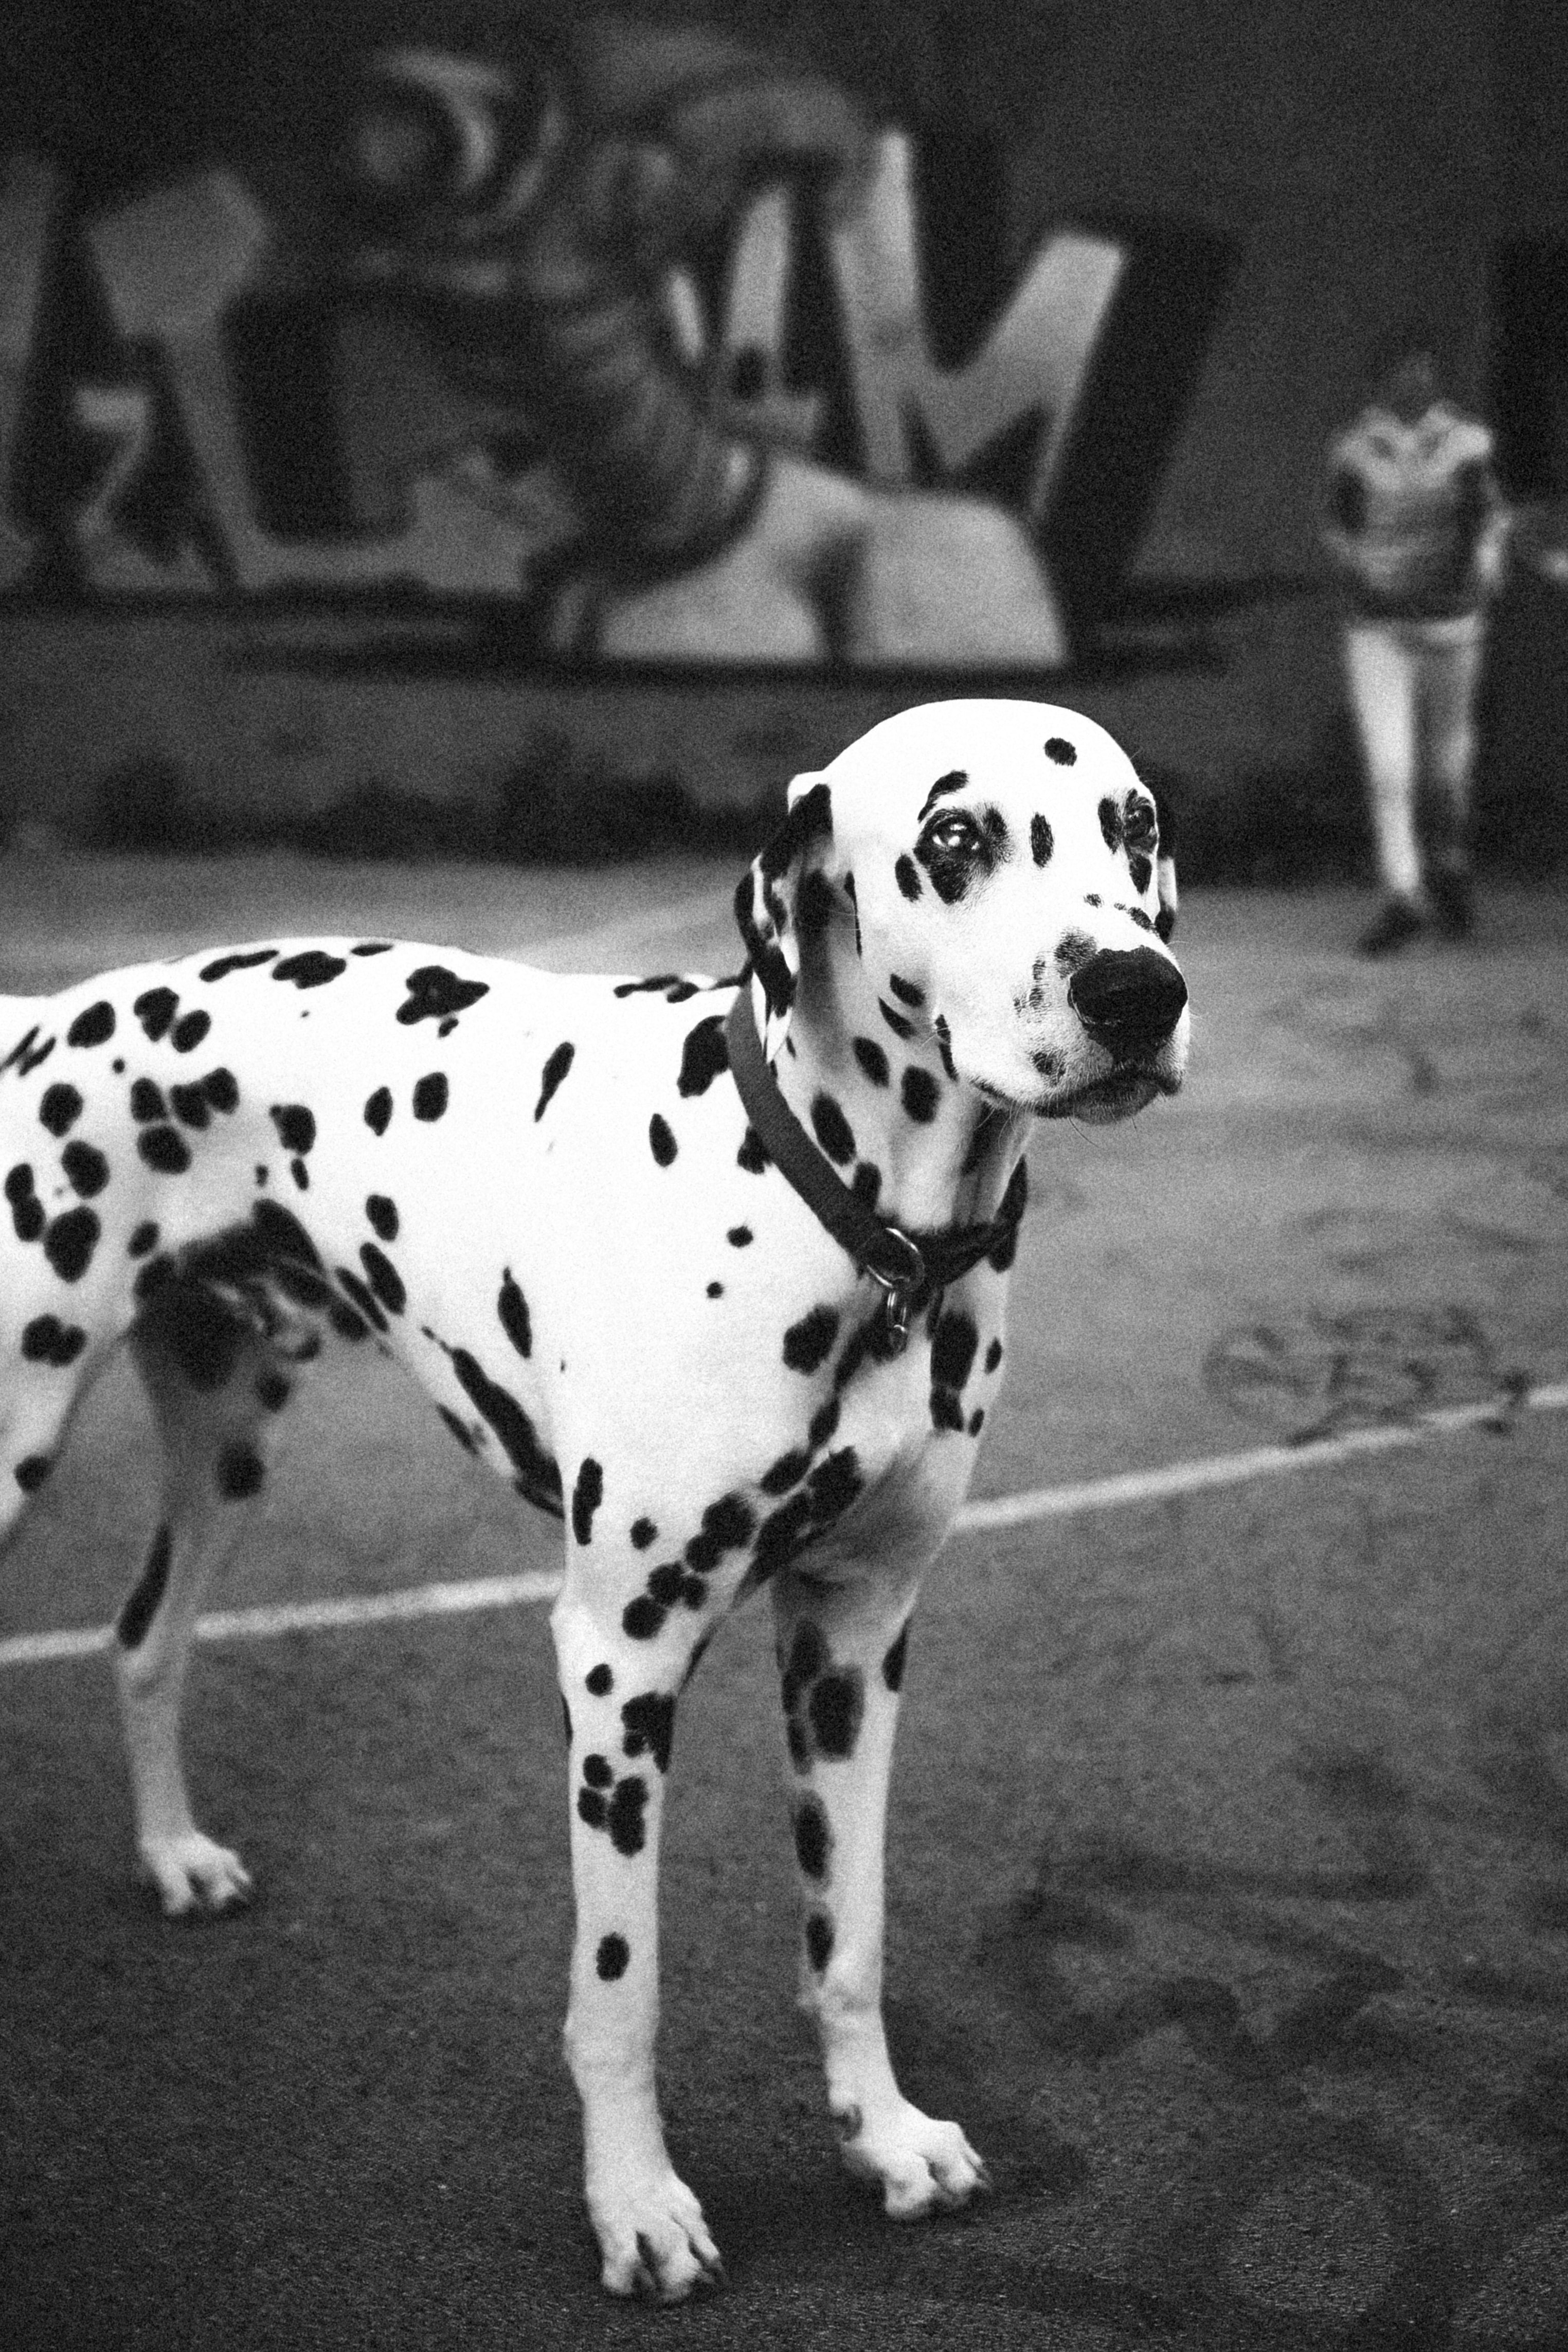 Black and white photo of dalmatian dog in a parking lot near graffitied wall